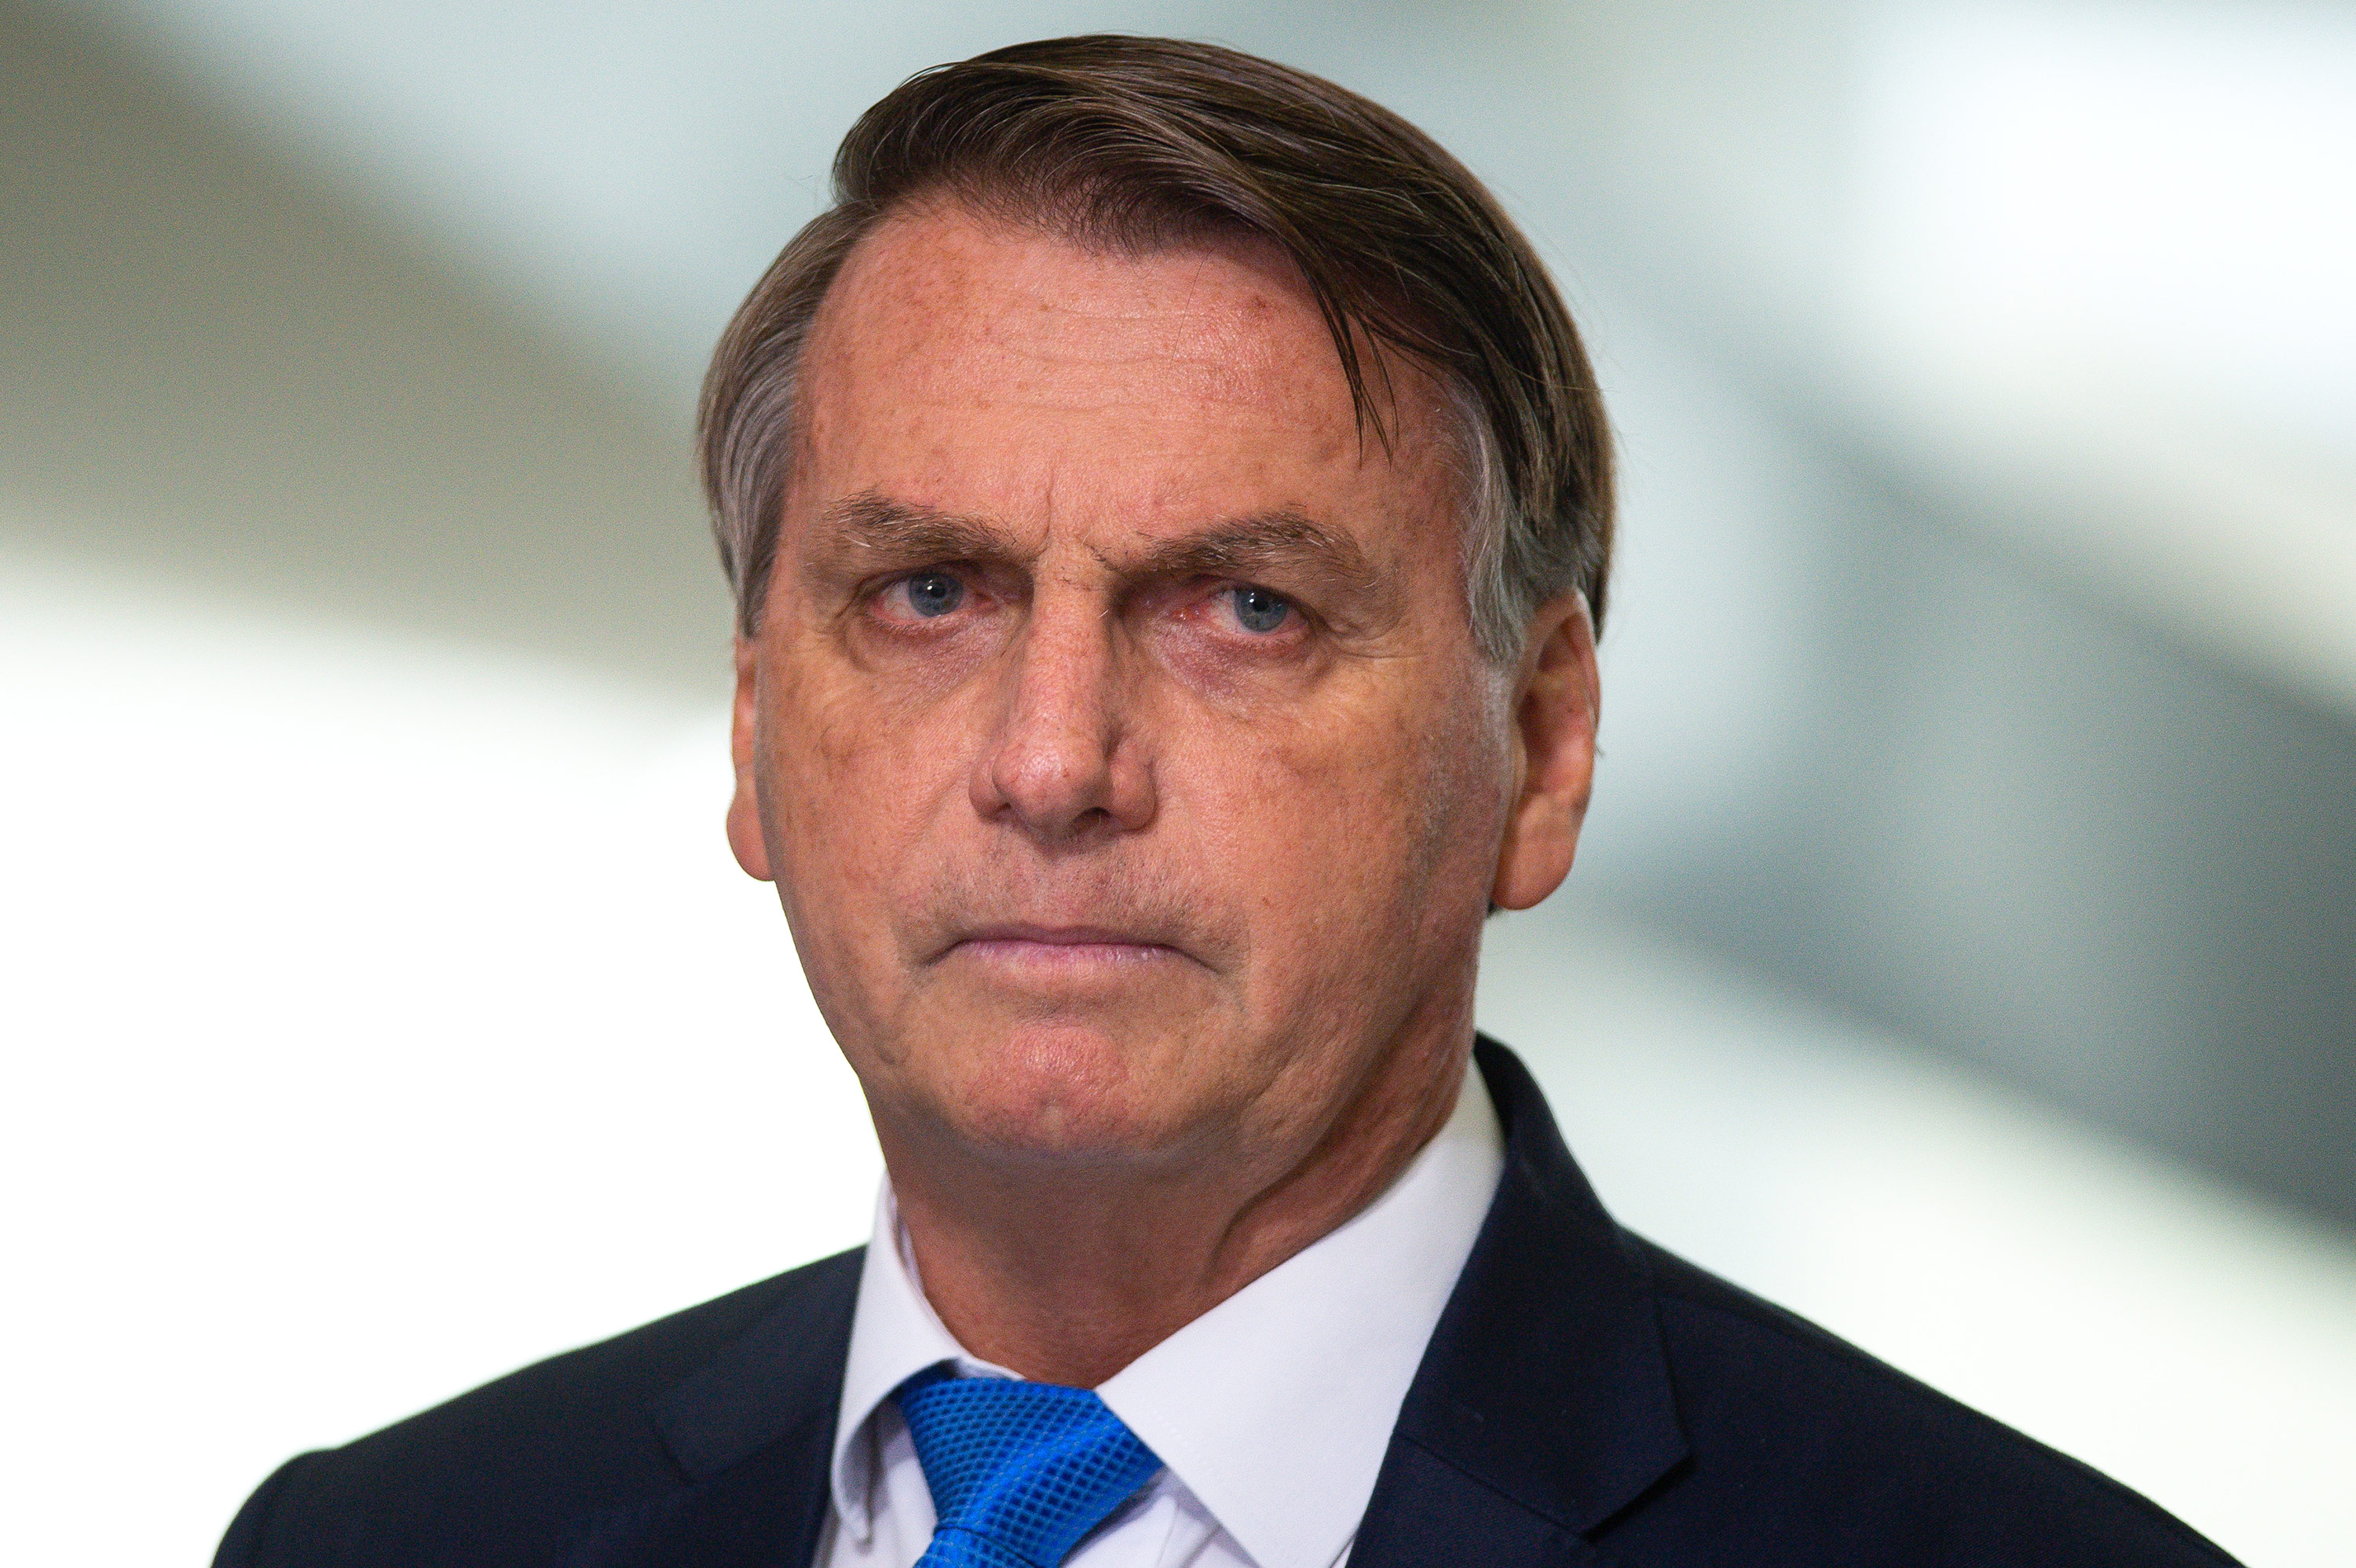 Brazilian President Jair Bolsonaro speaks during a news conference at the Planalto Palace in Brasilia, Brazil, on March 31.